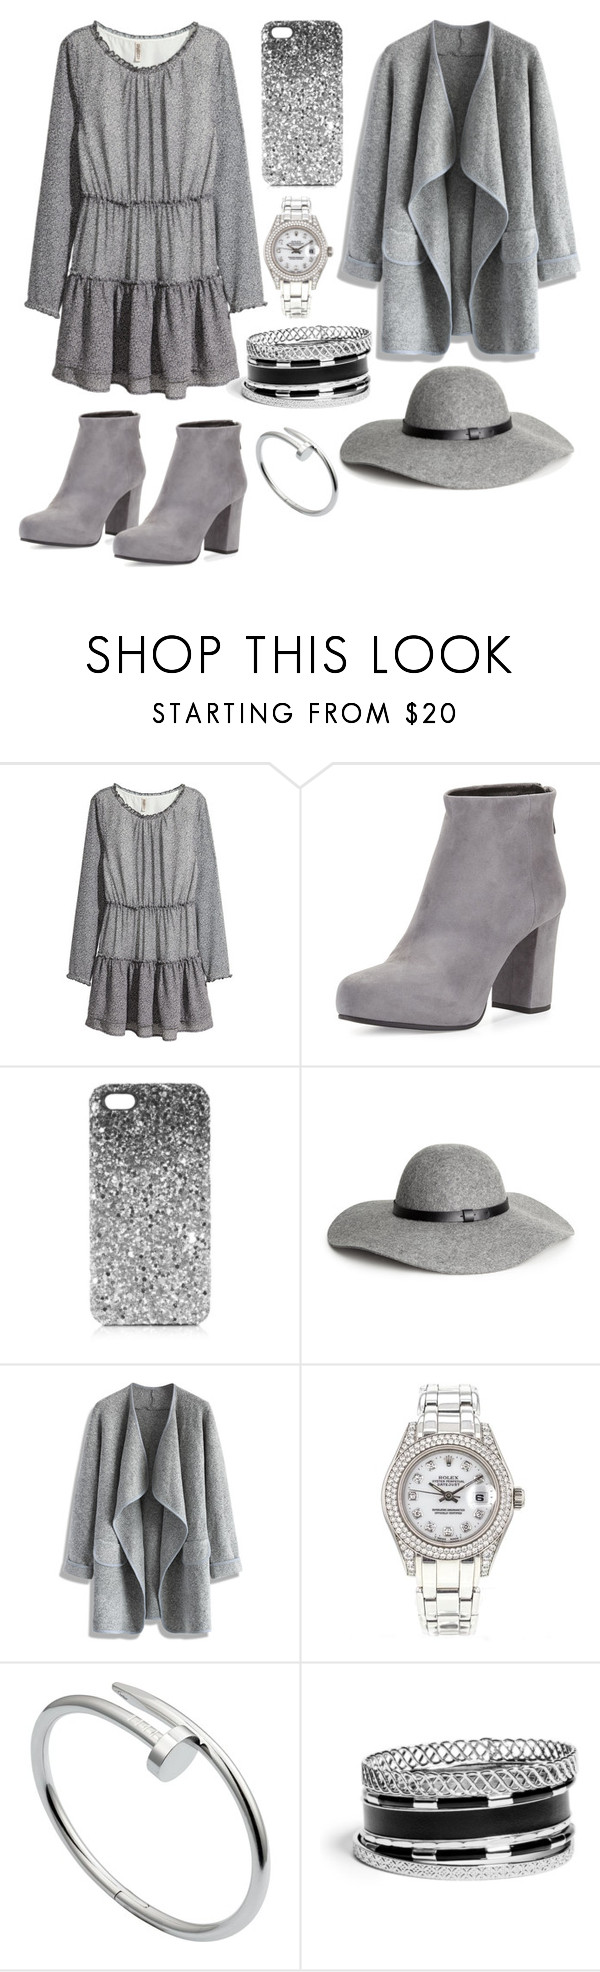 21. by xxaymxx on Polyvore featuring moda, H&M, Chicwish, Prada, GUESS, Rolex, Cartier and Topshop